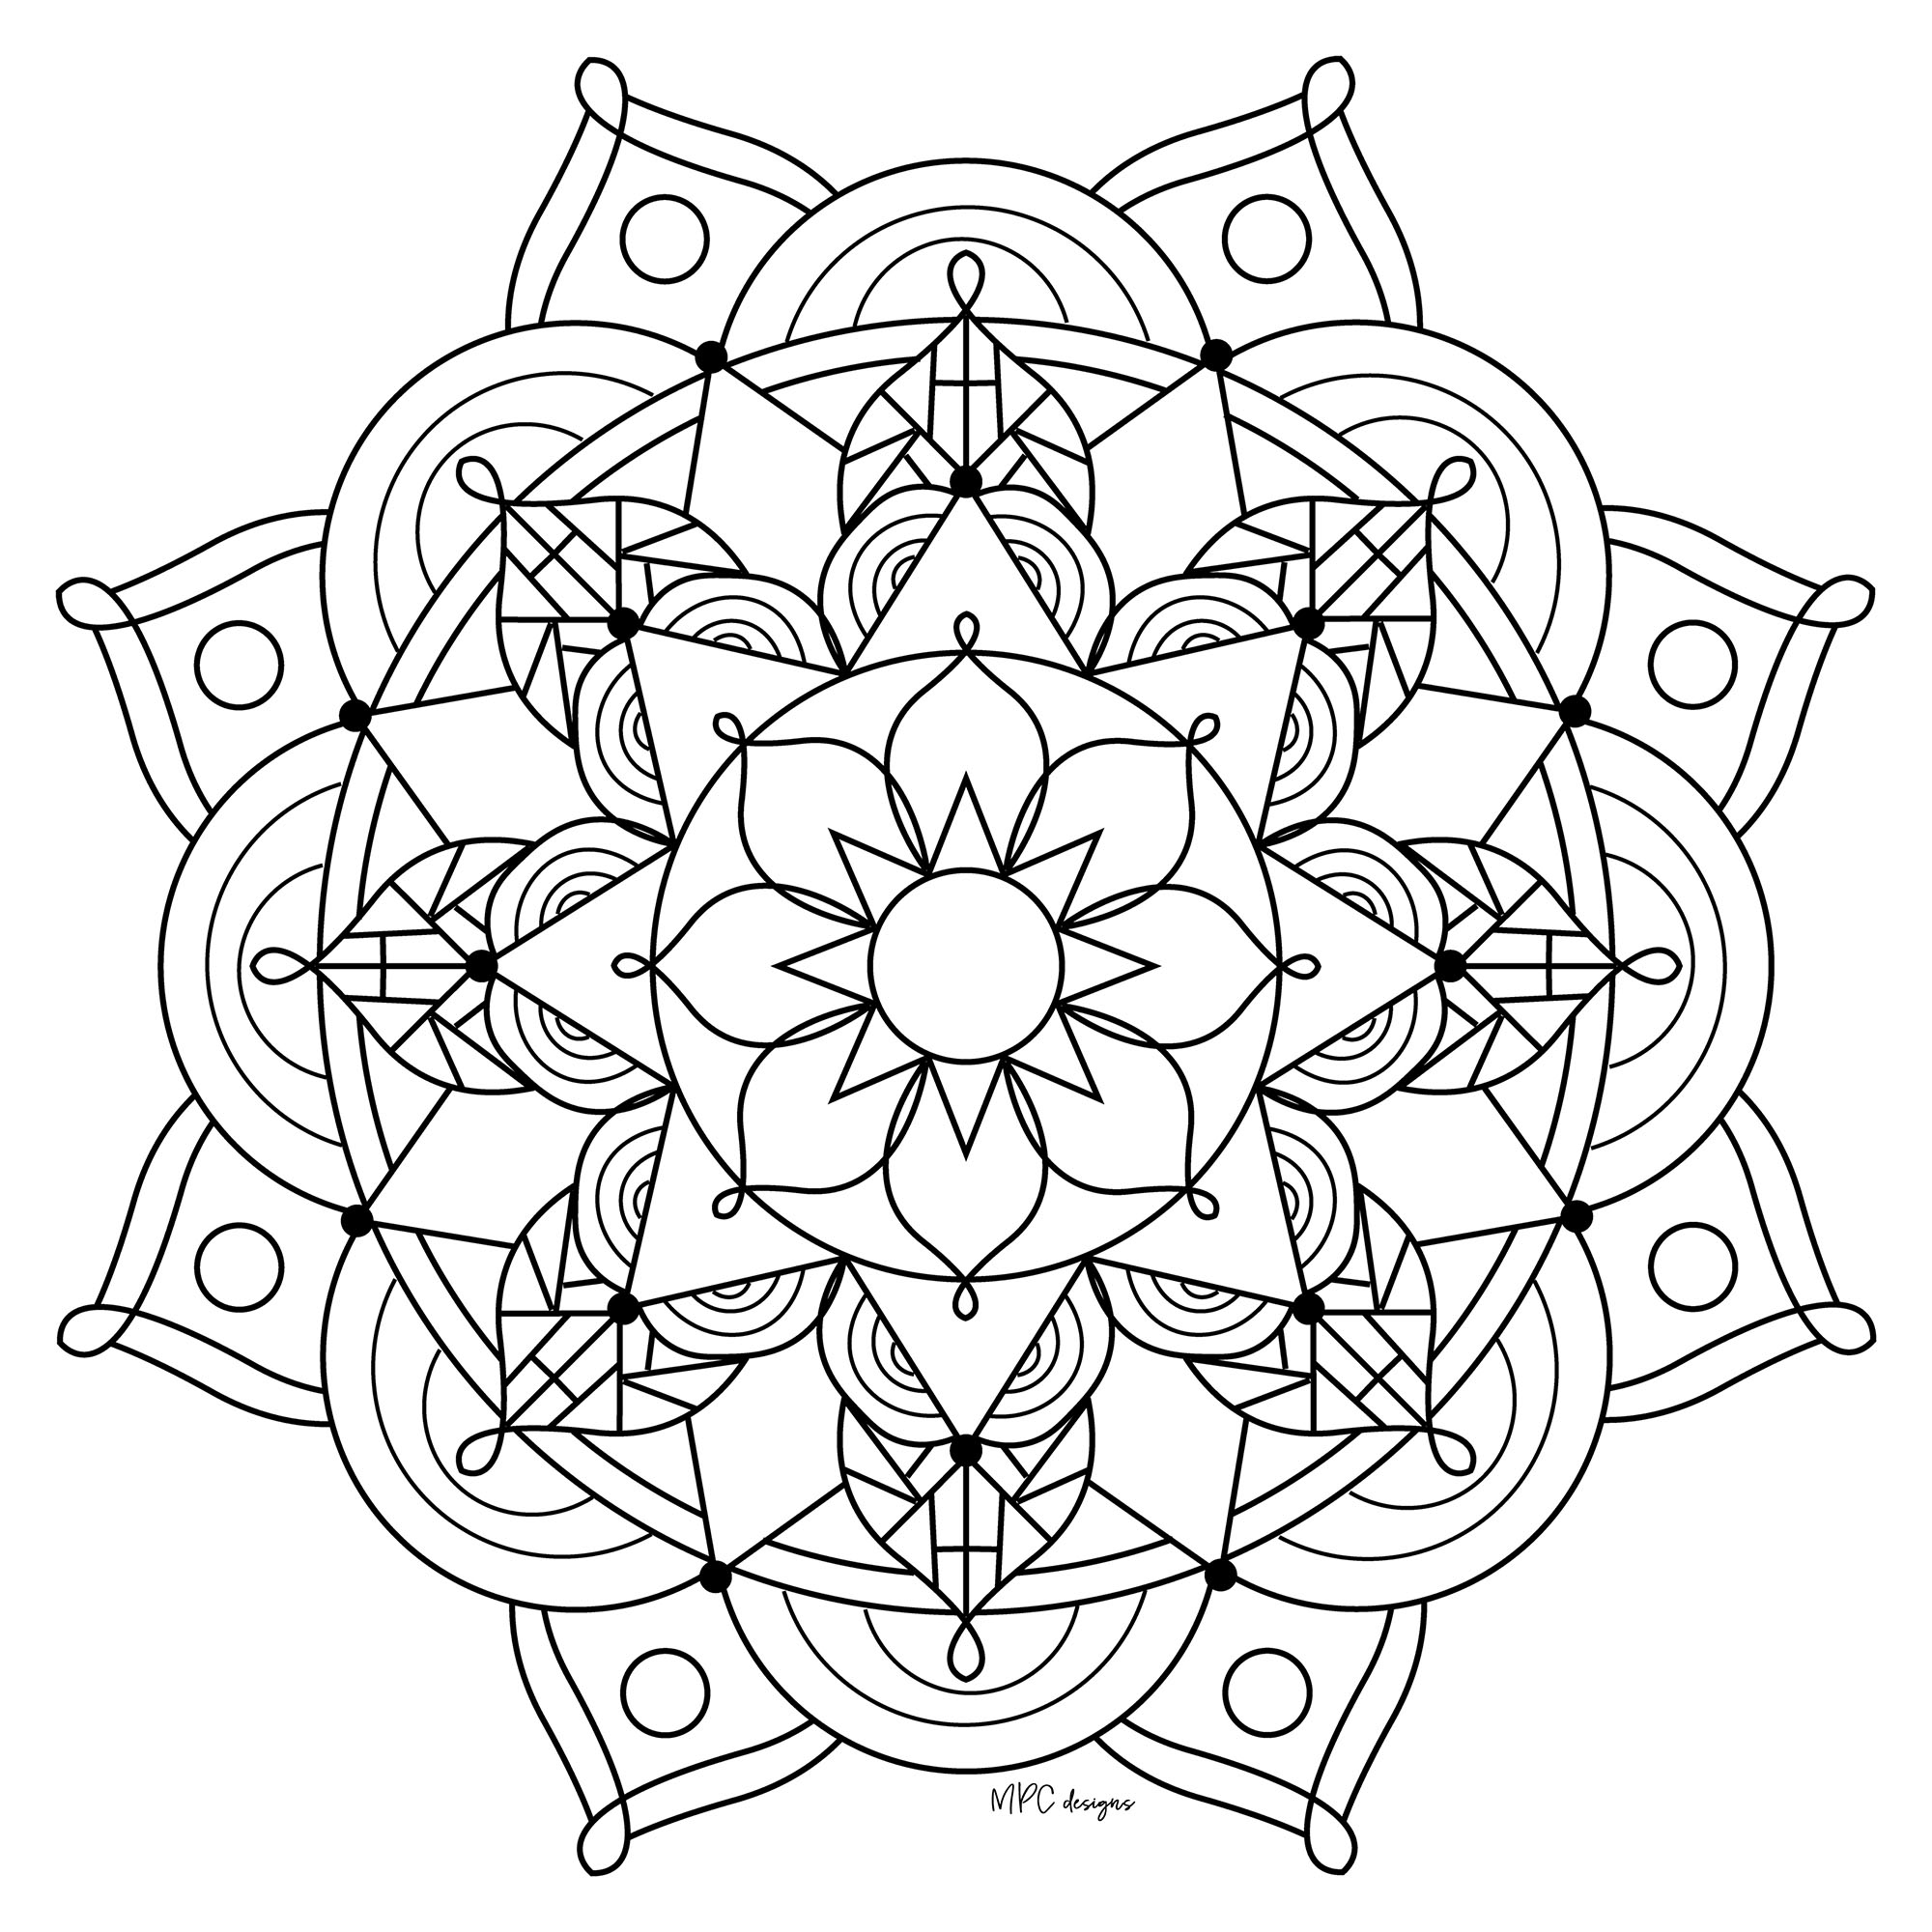 simple mandalas happy mandala with stars easy mandalas for kids 100 simple mandalas